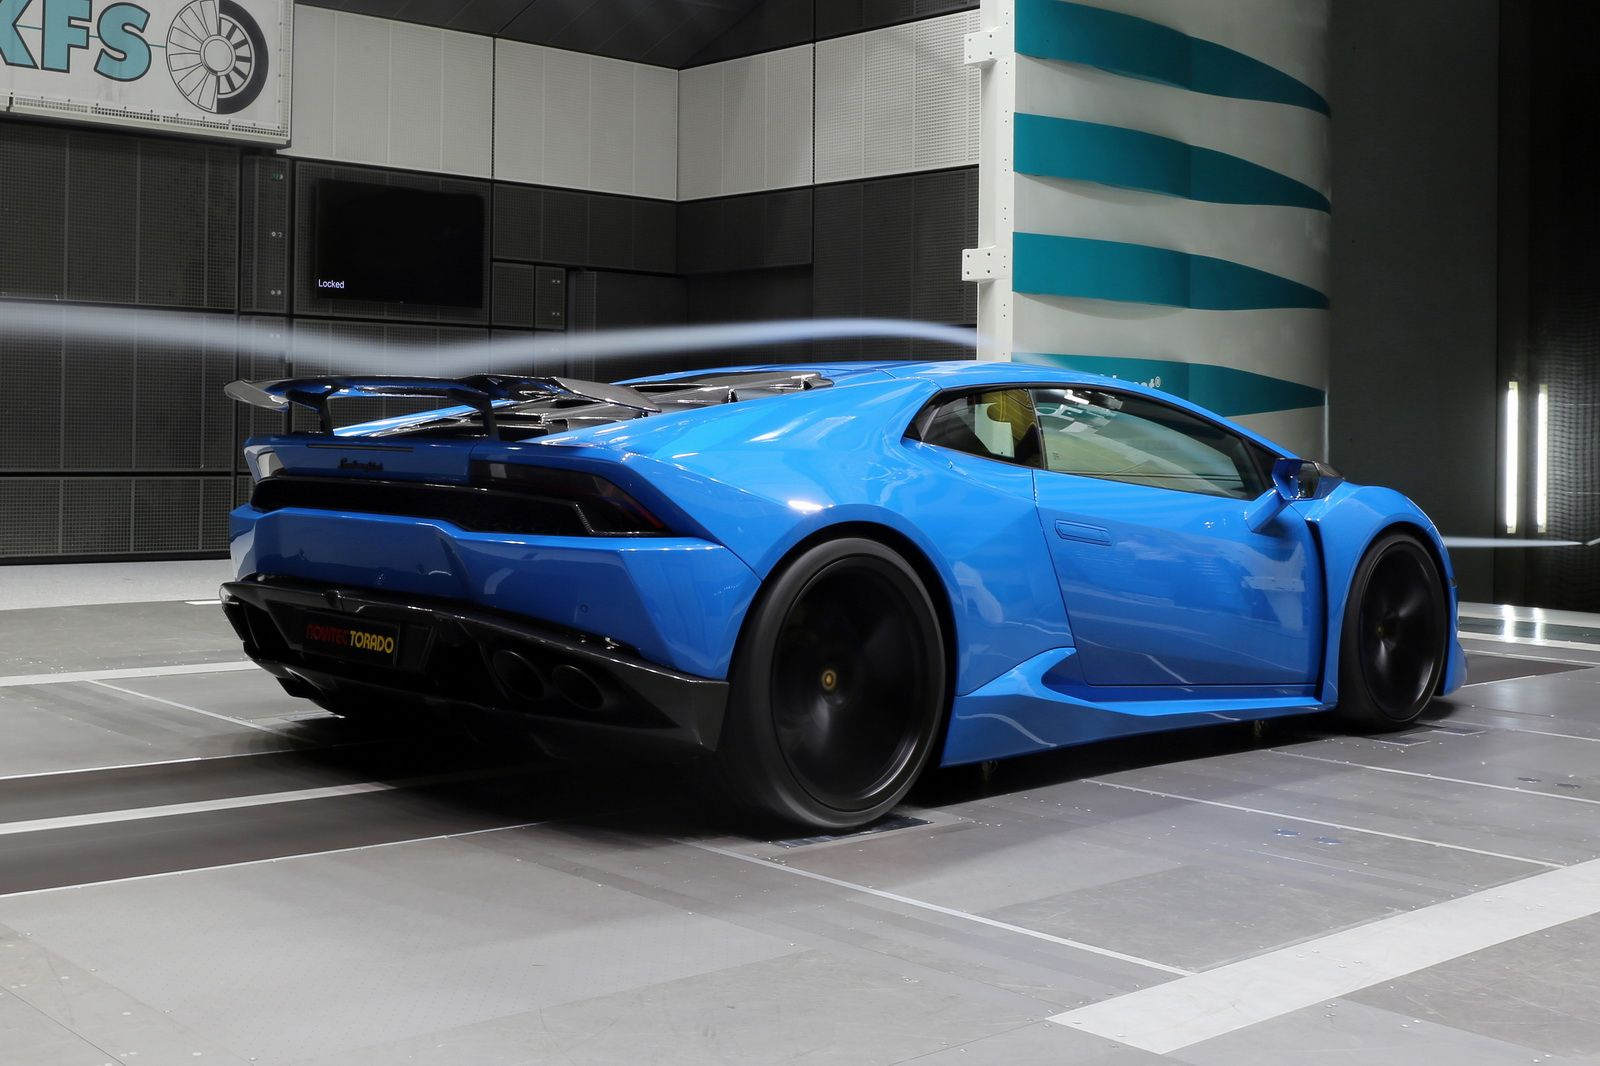 Explore Supercars, Lamborghini Huracan, And More!